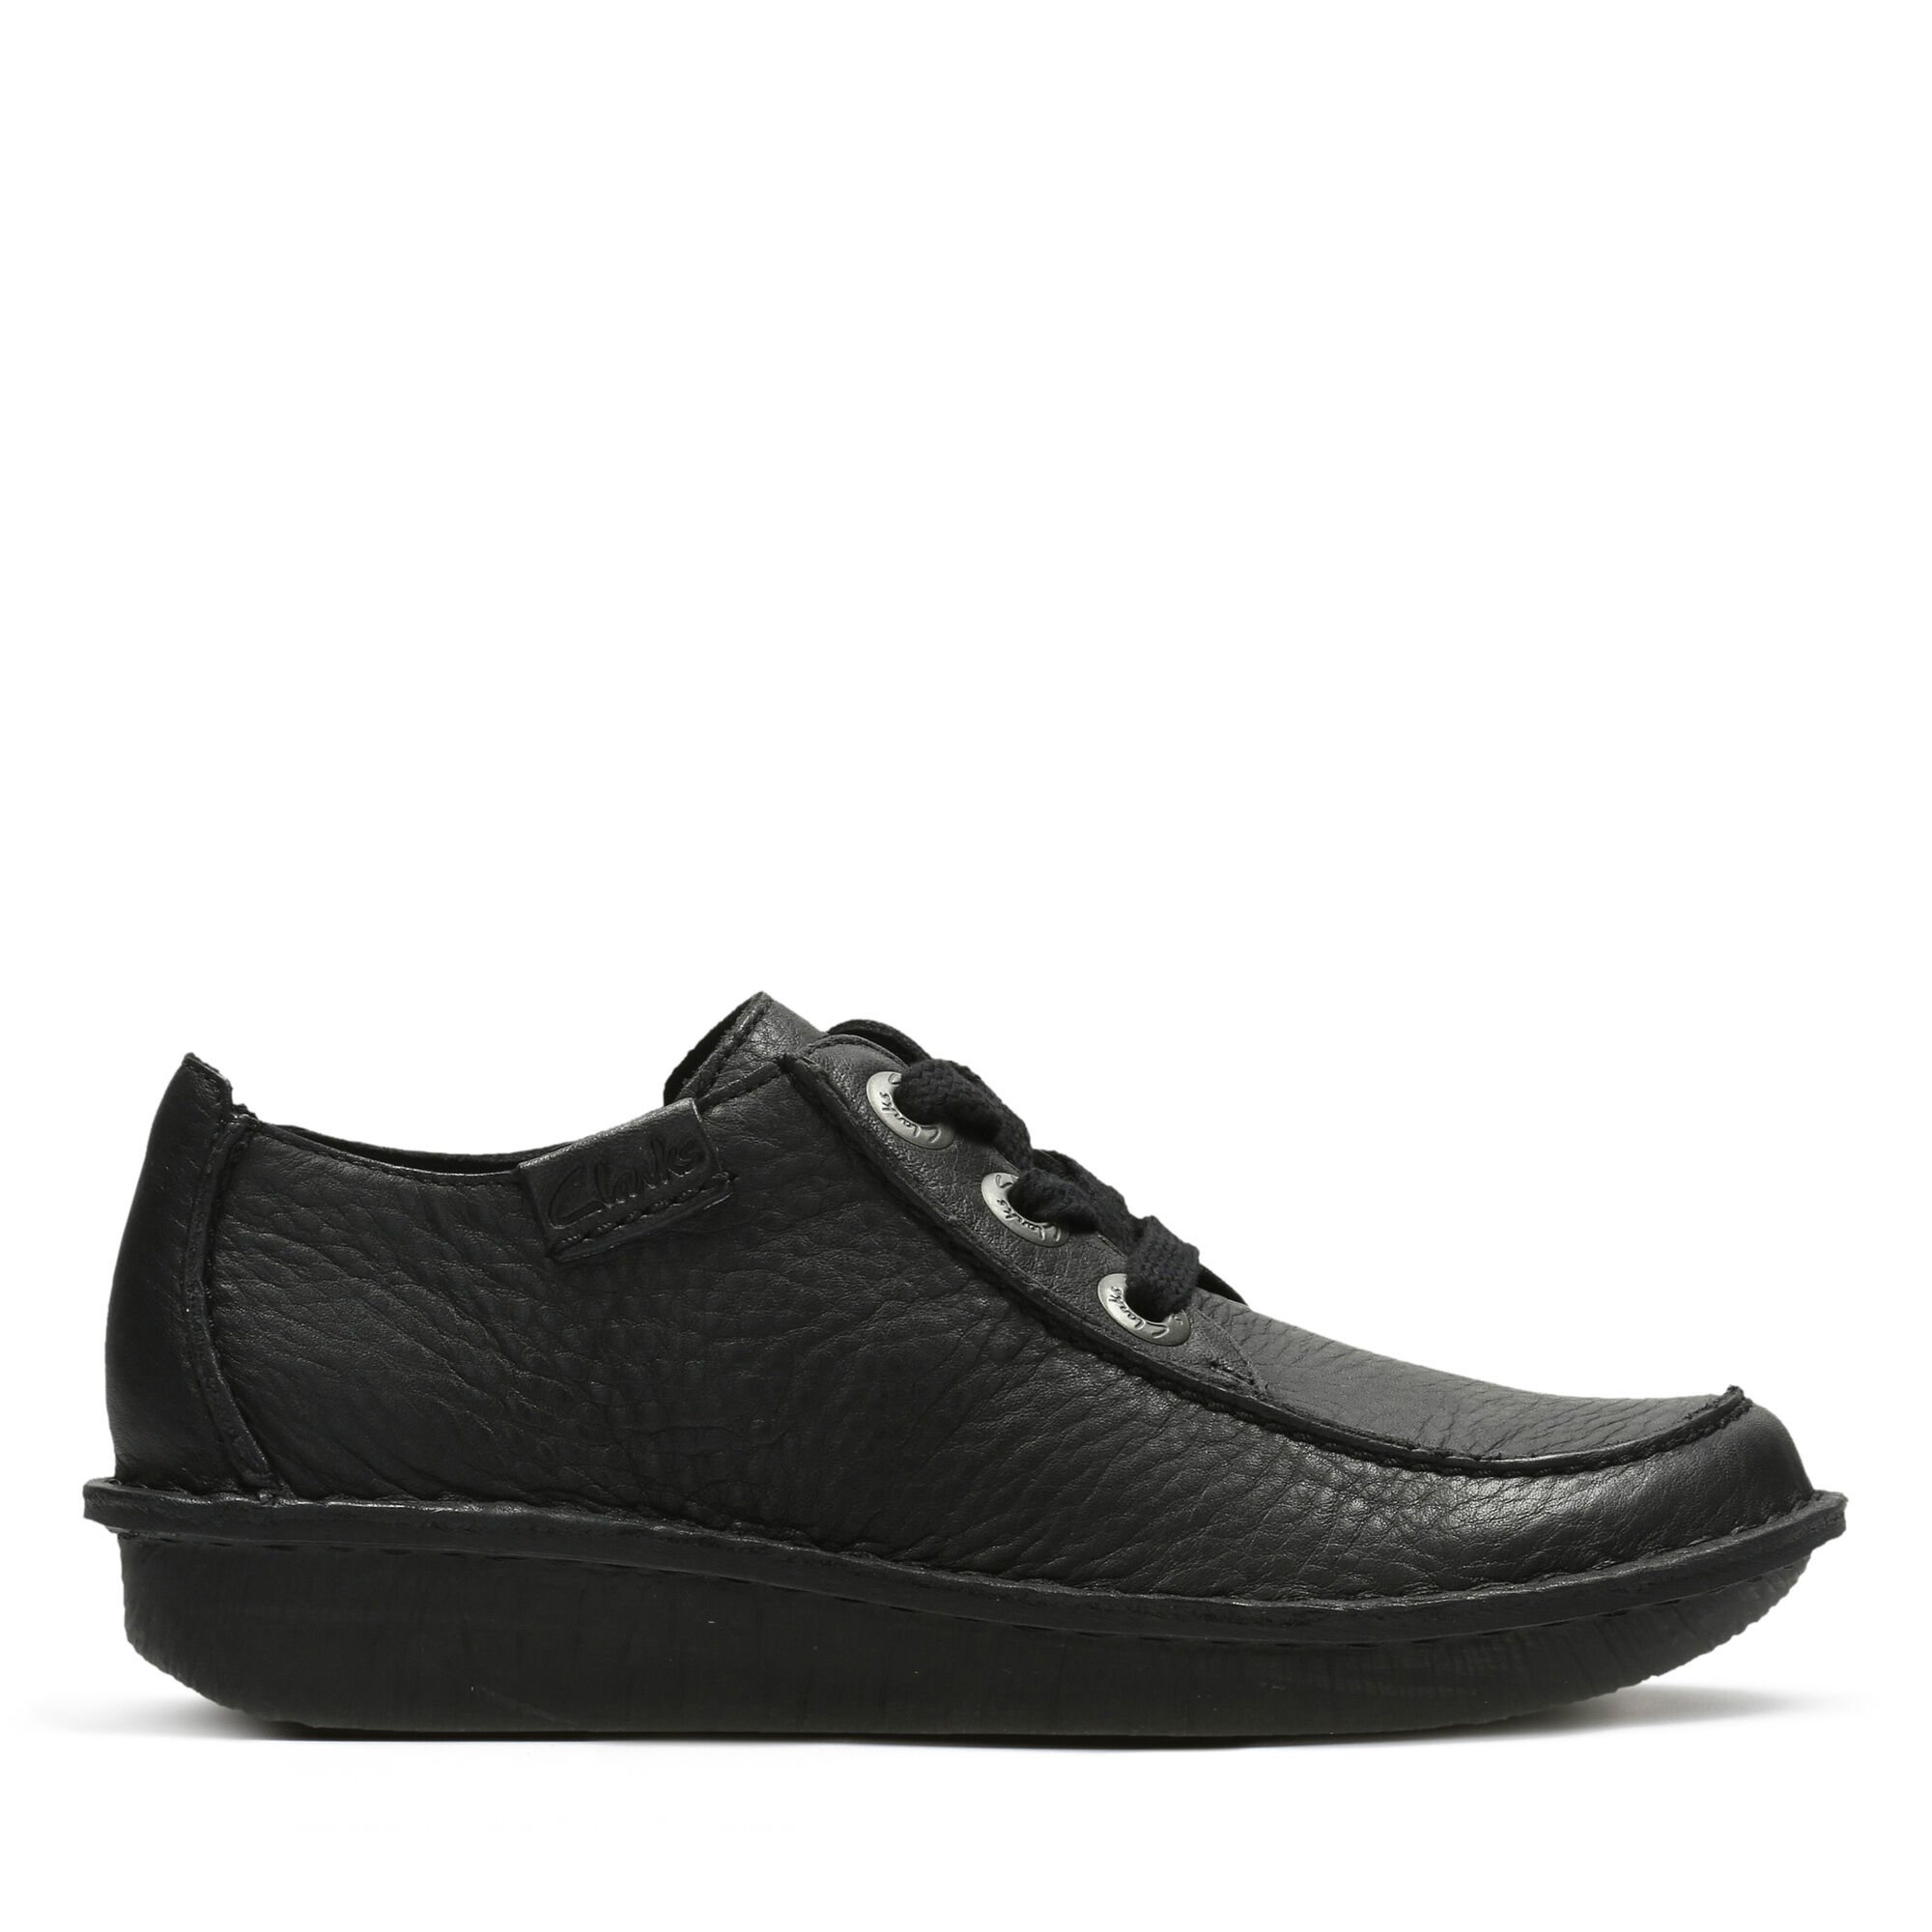 CLARKS FUNNY DREAM LADIES LACE UP CASUAL